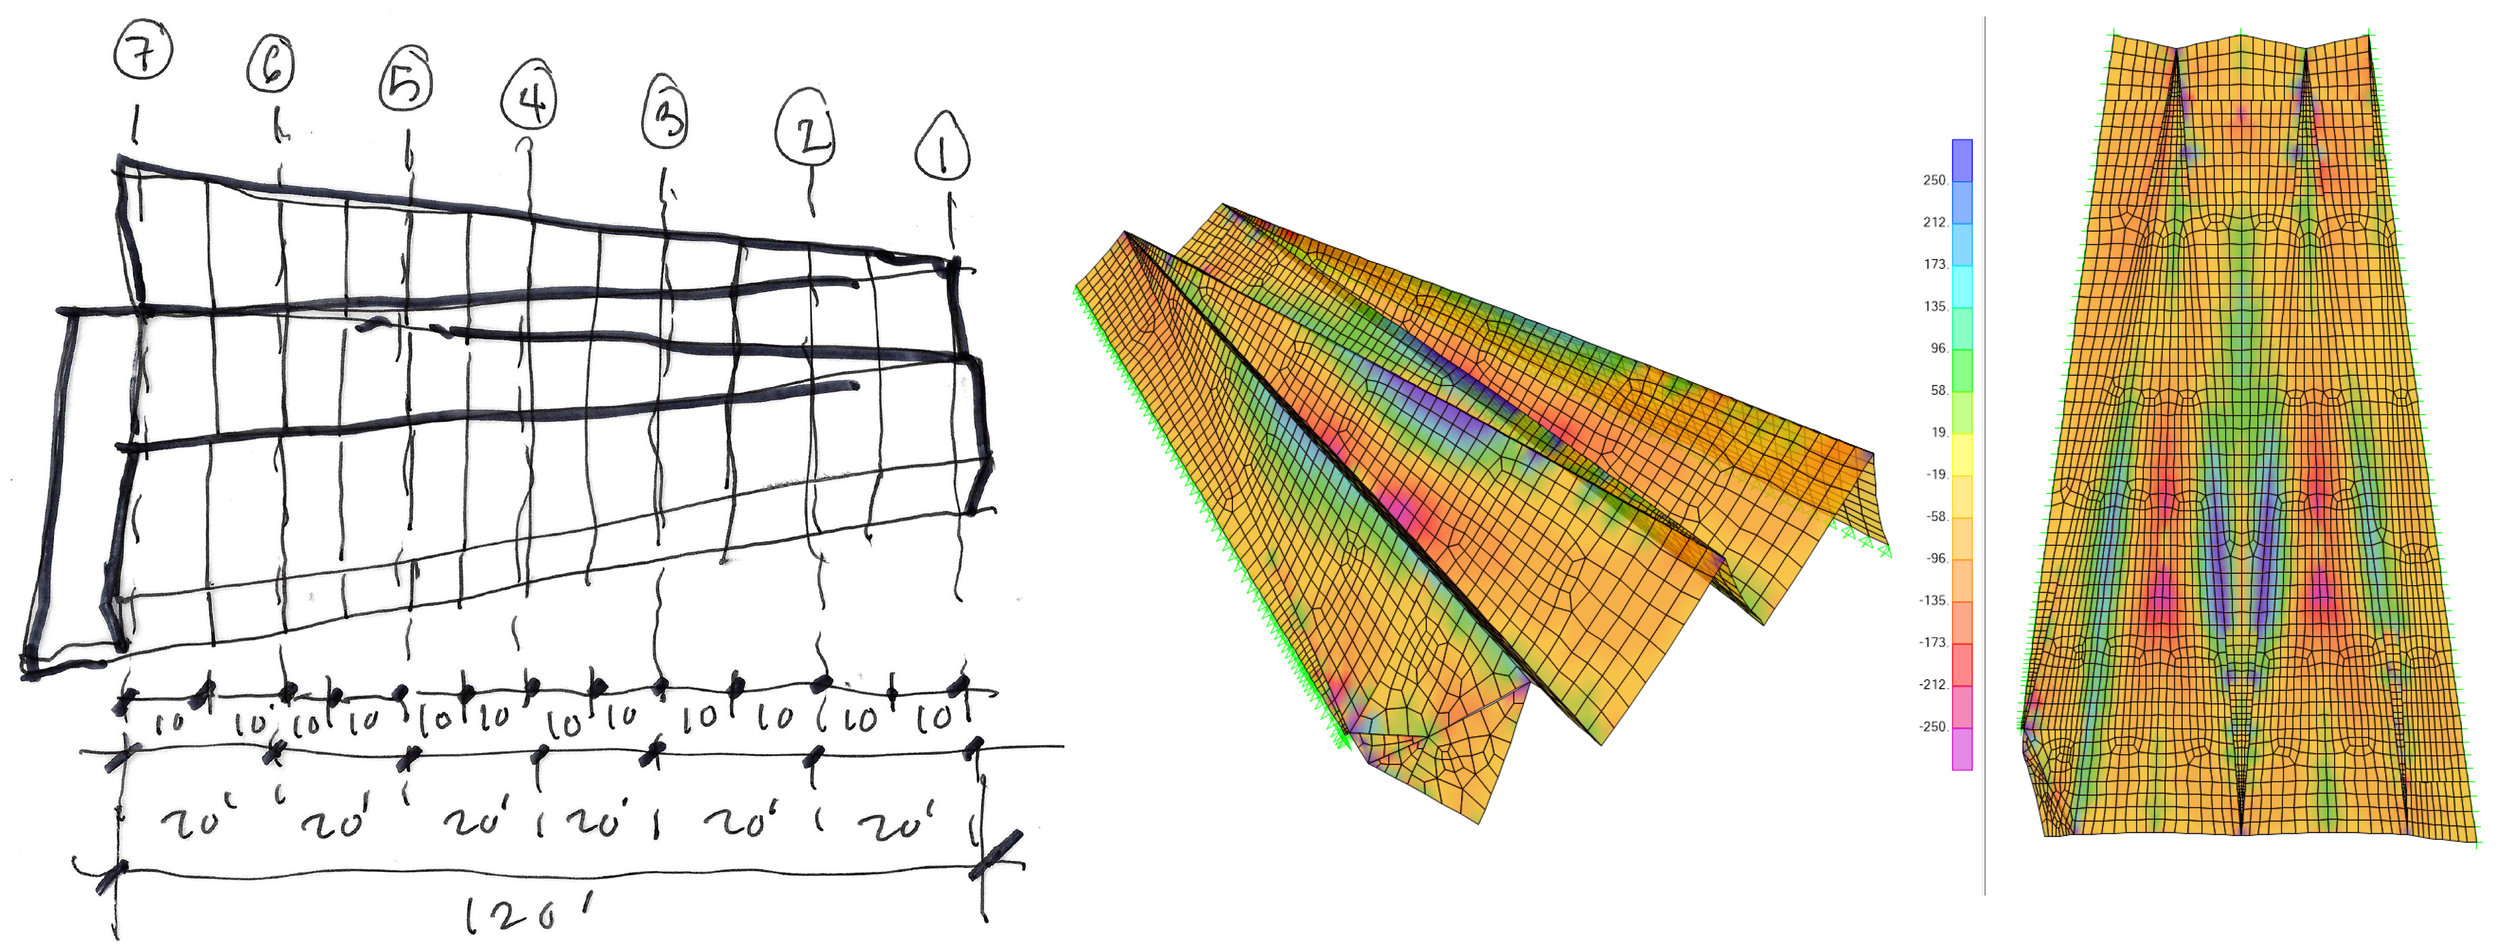 LEFT: CLT PANEL DIAGRAM; RIGHT: STRESS ANALYSIS DIAGRAMS OF CLT ROOF